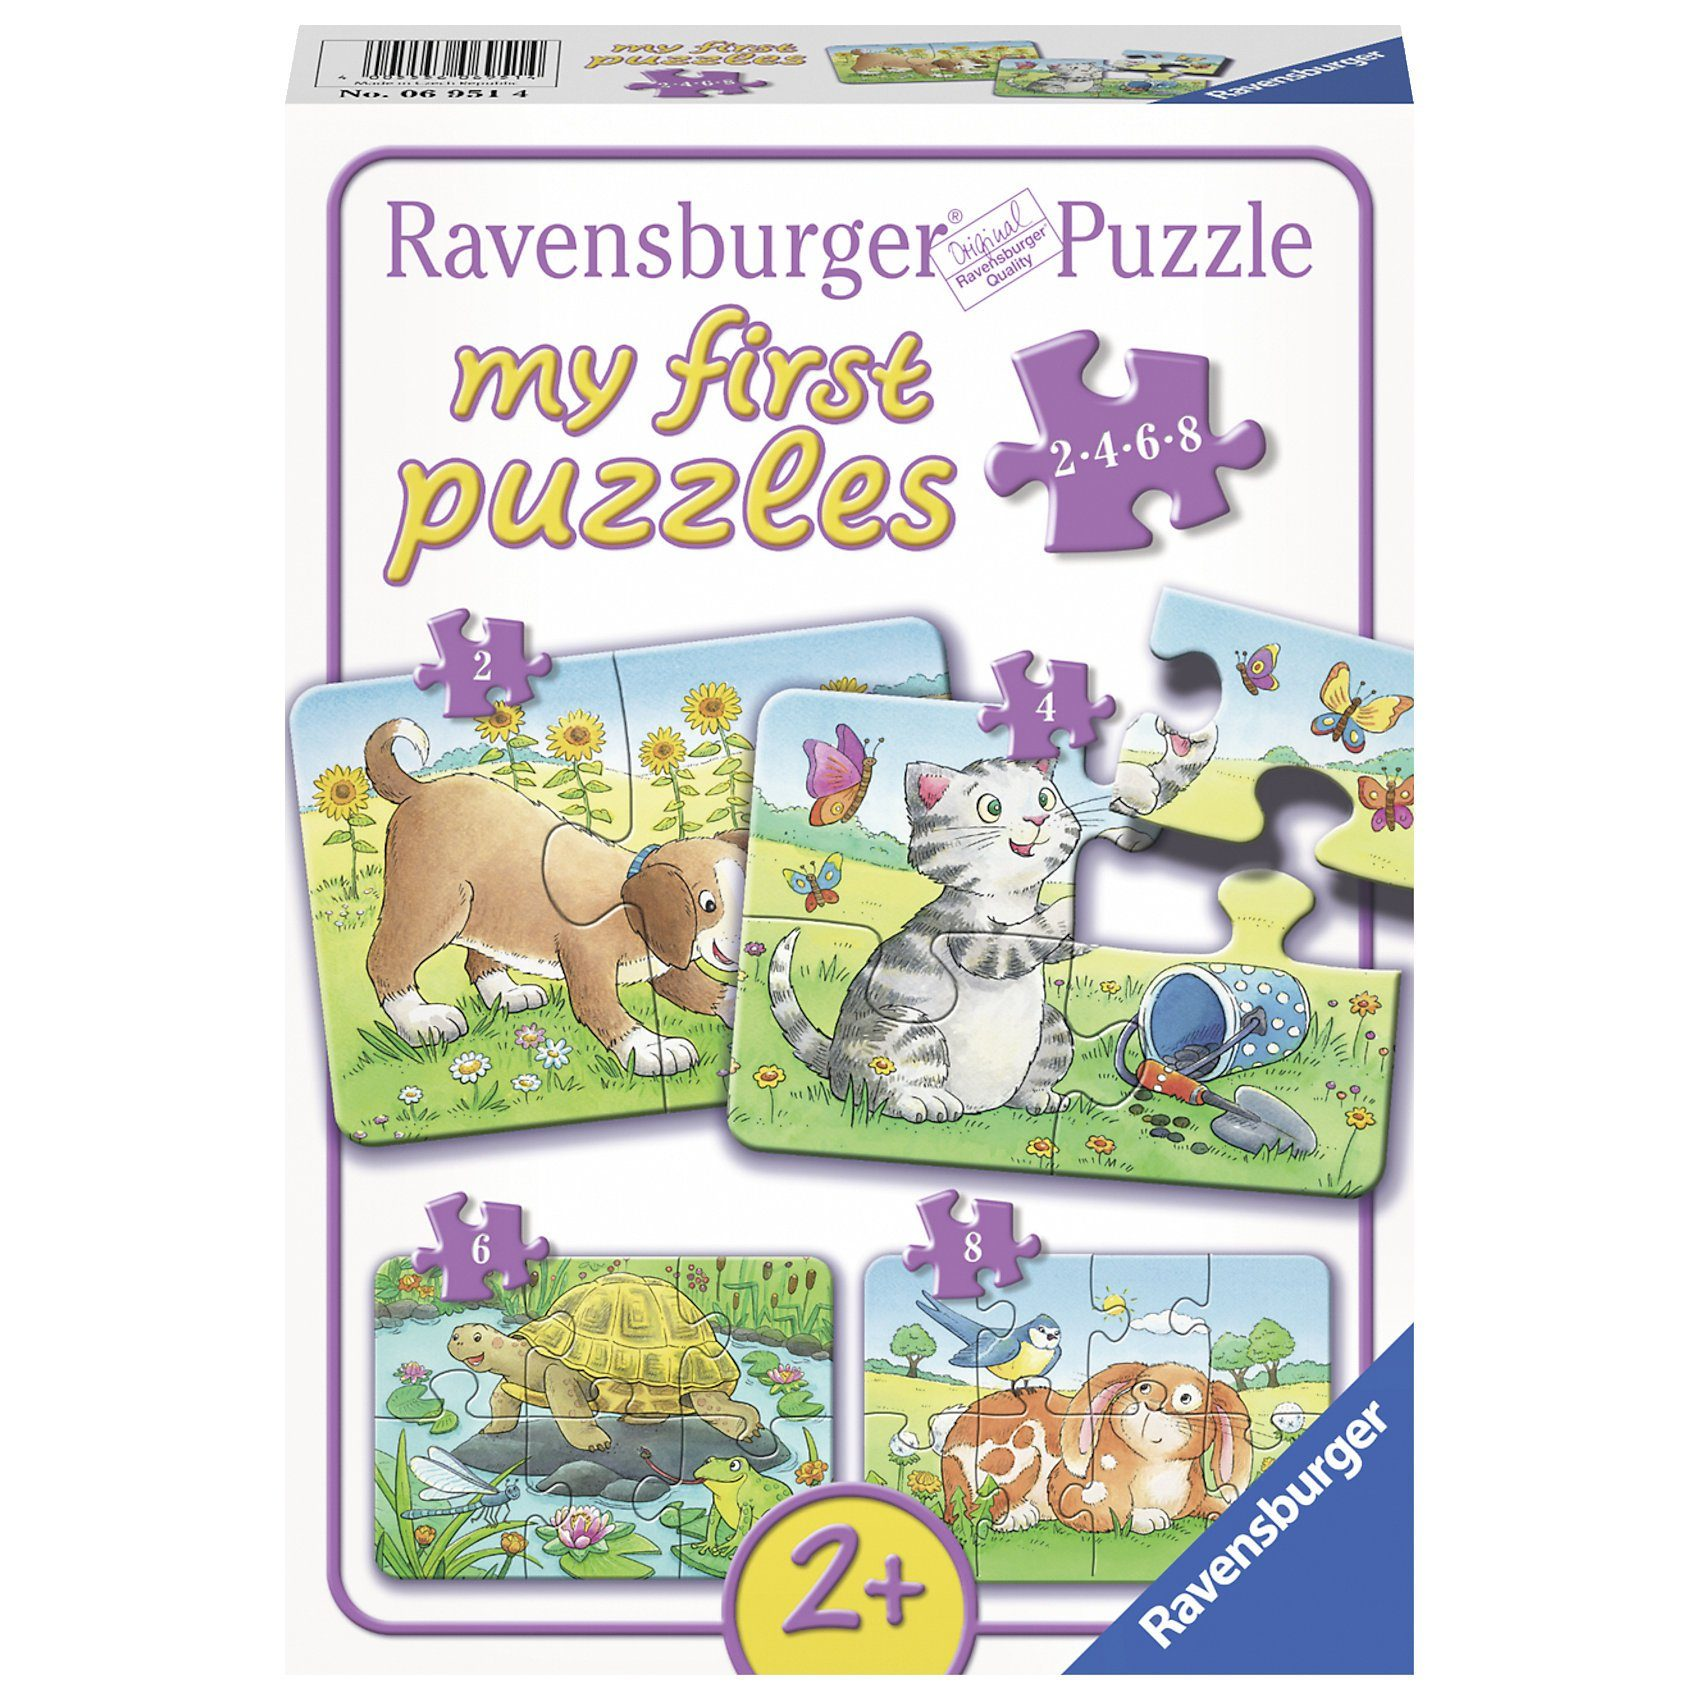 Ravensburger my first Puzzle Puzzleset 2,4,6,8 Teile Niedliche Haustiere